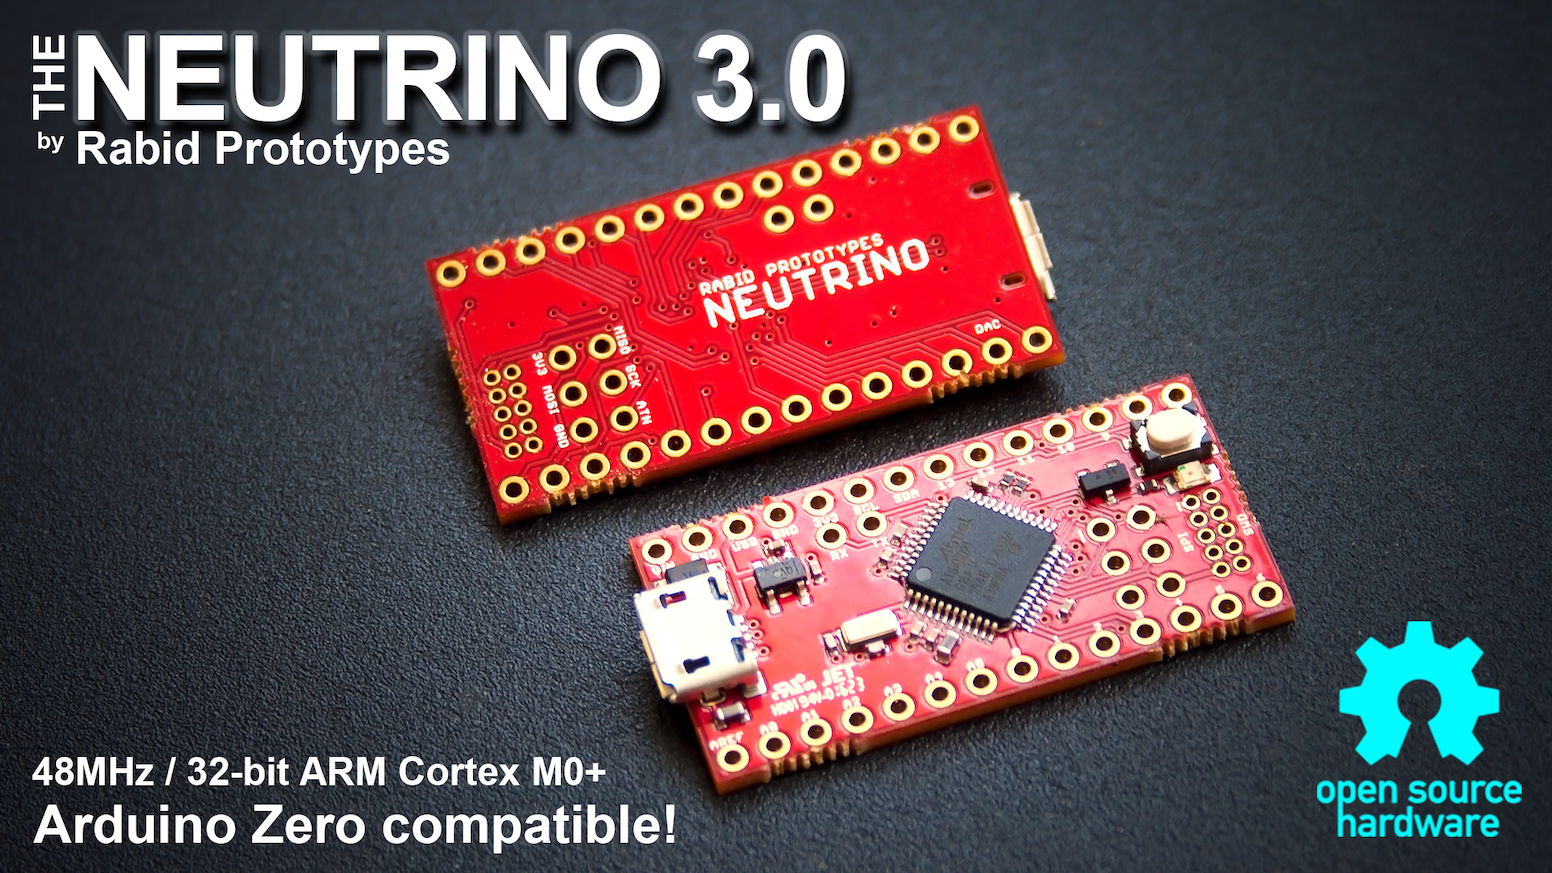 Featuring a 32-bit 48MHz ARM Cortex M0+ processor, the Neutrino 3.0 is fully compatible with the Arduino Zero!